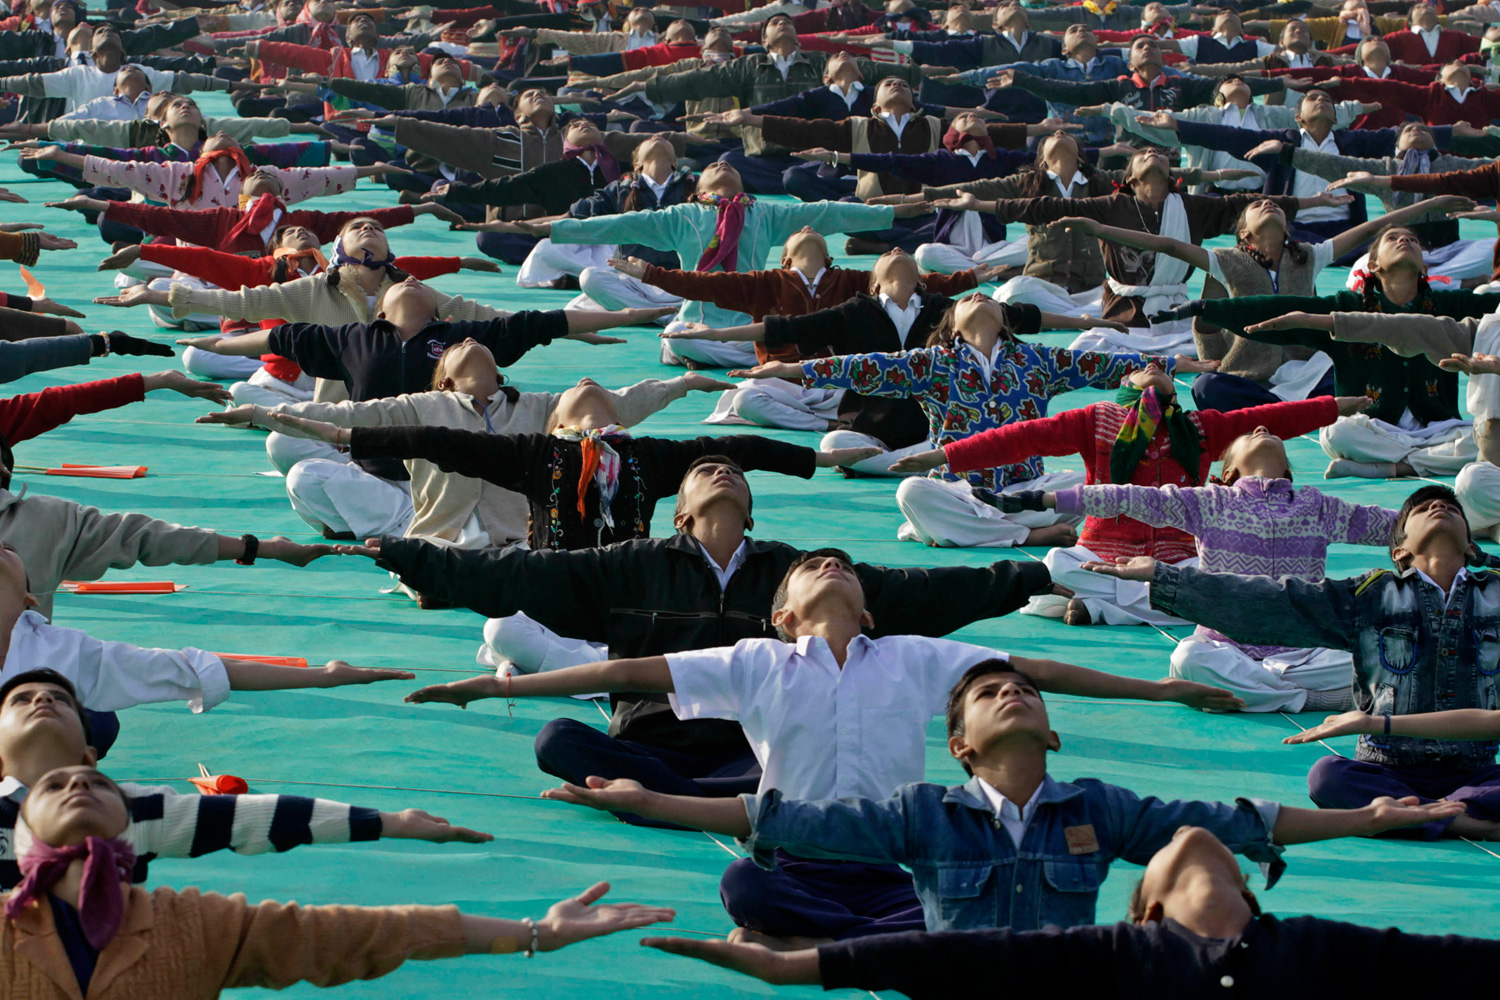 January 10, 2012. Indian school children perform yoga during a rehearsal for the inaugural ceremony of the International Kite Festival in Ahmadabad, India.